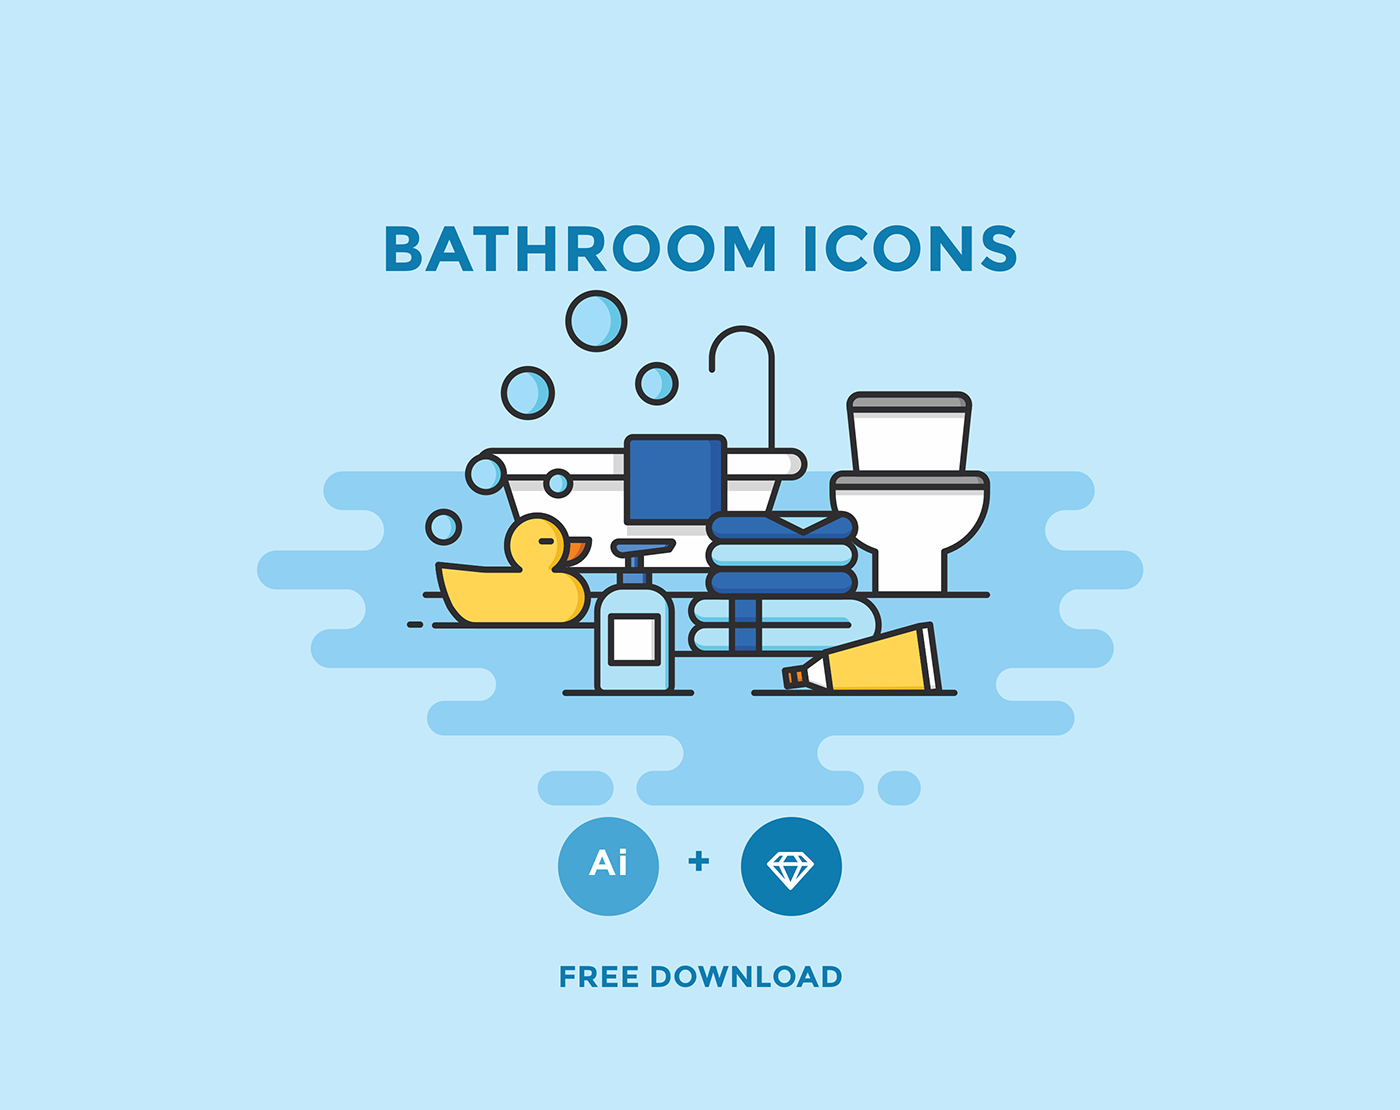 Free Download: Bathroom Icons